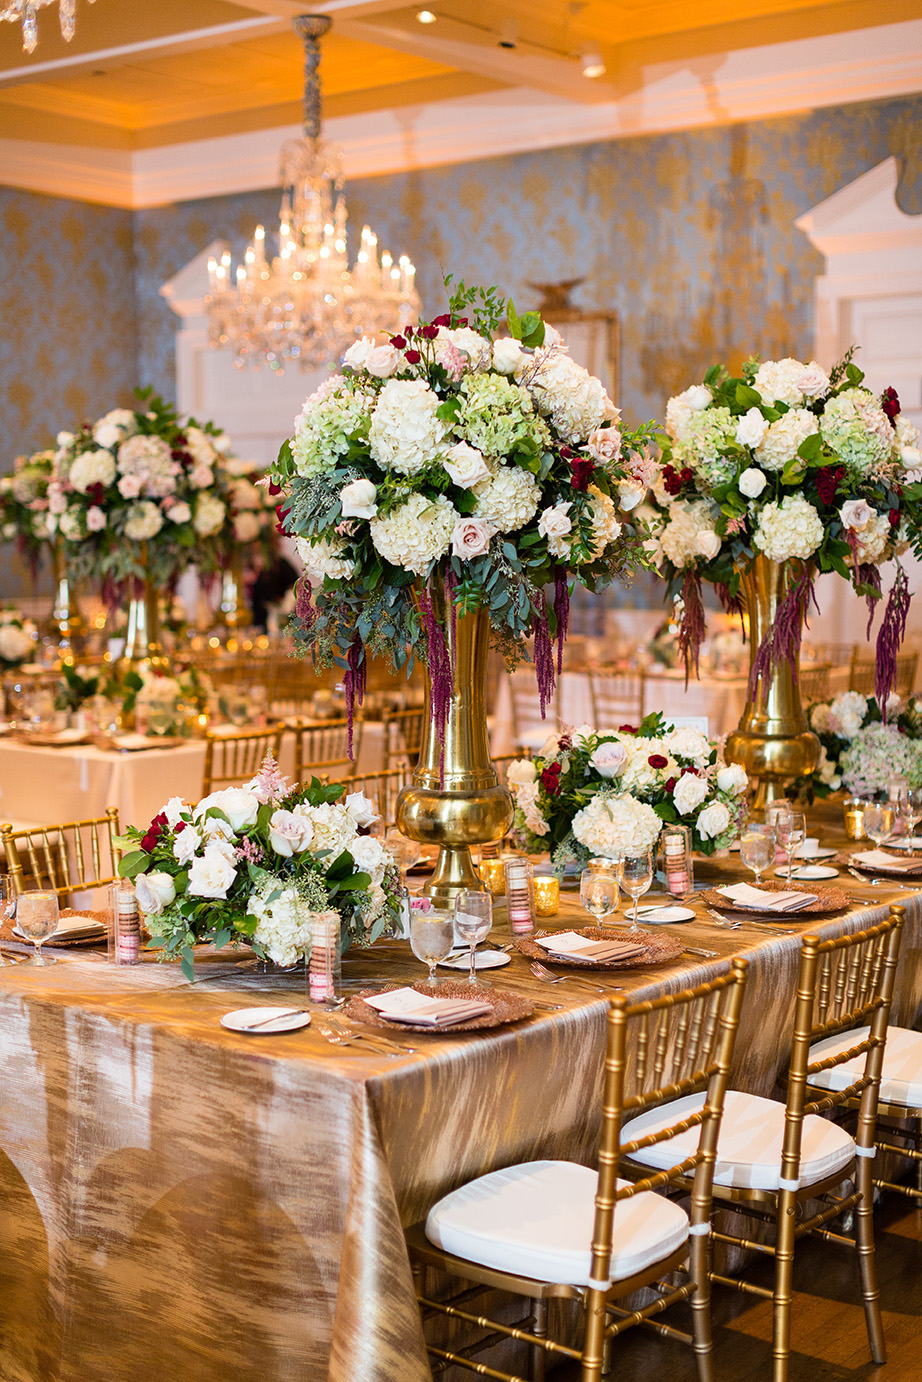 Houston wedding, reception decor, wedding inspiration, gold, wine, cream floral centerpieces